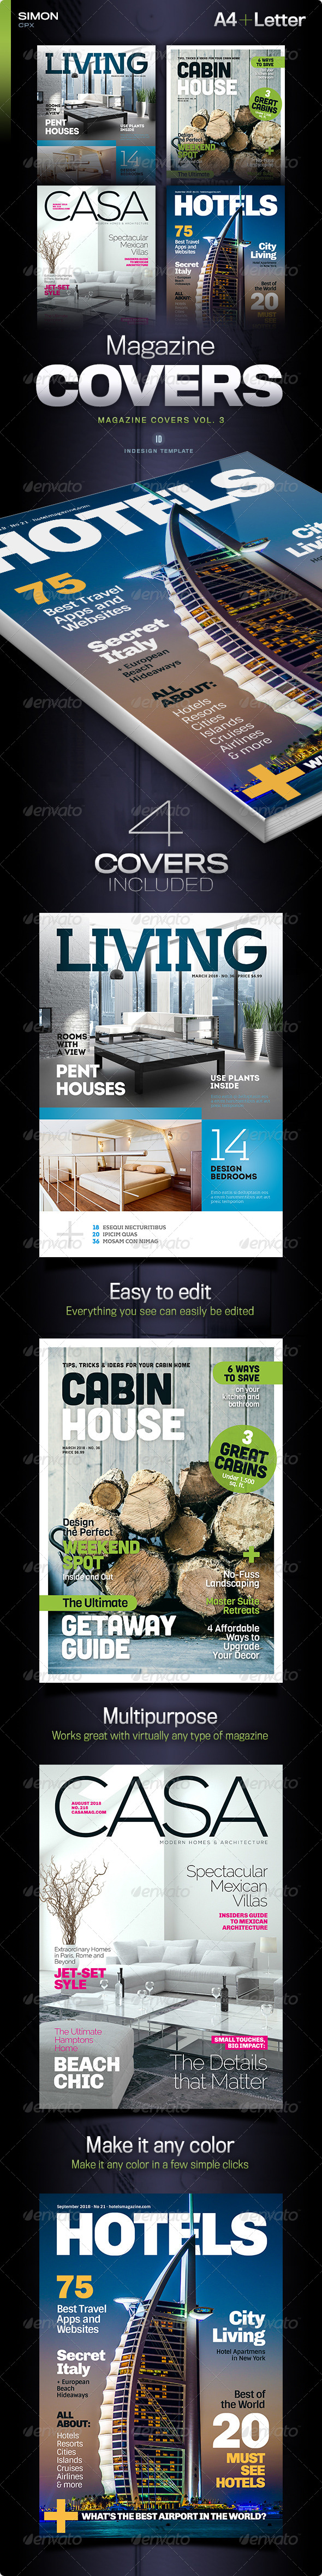 GraphicRiver Magazine Covers Vol 3 6537181